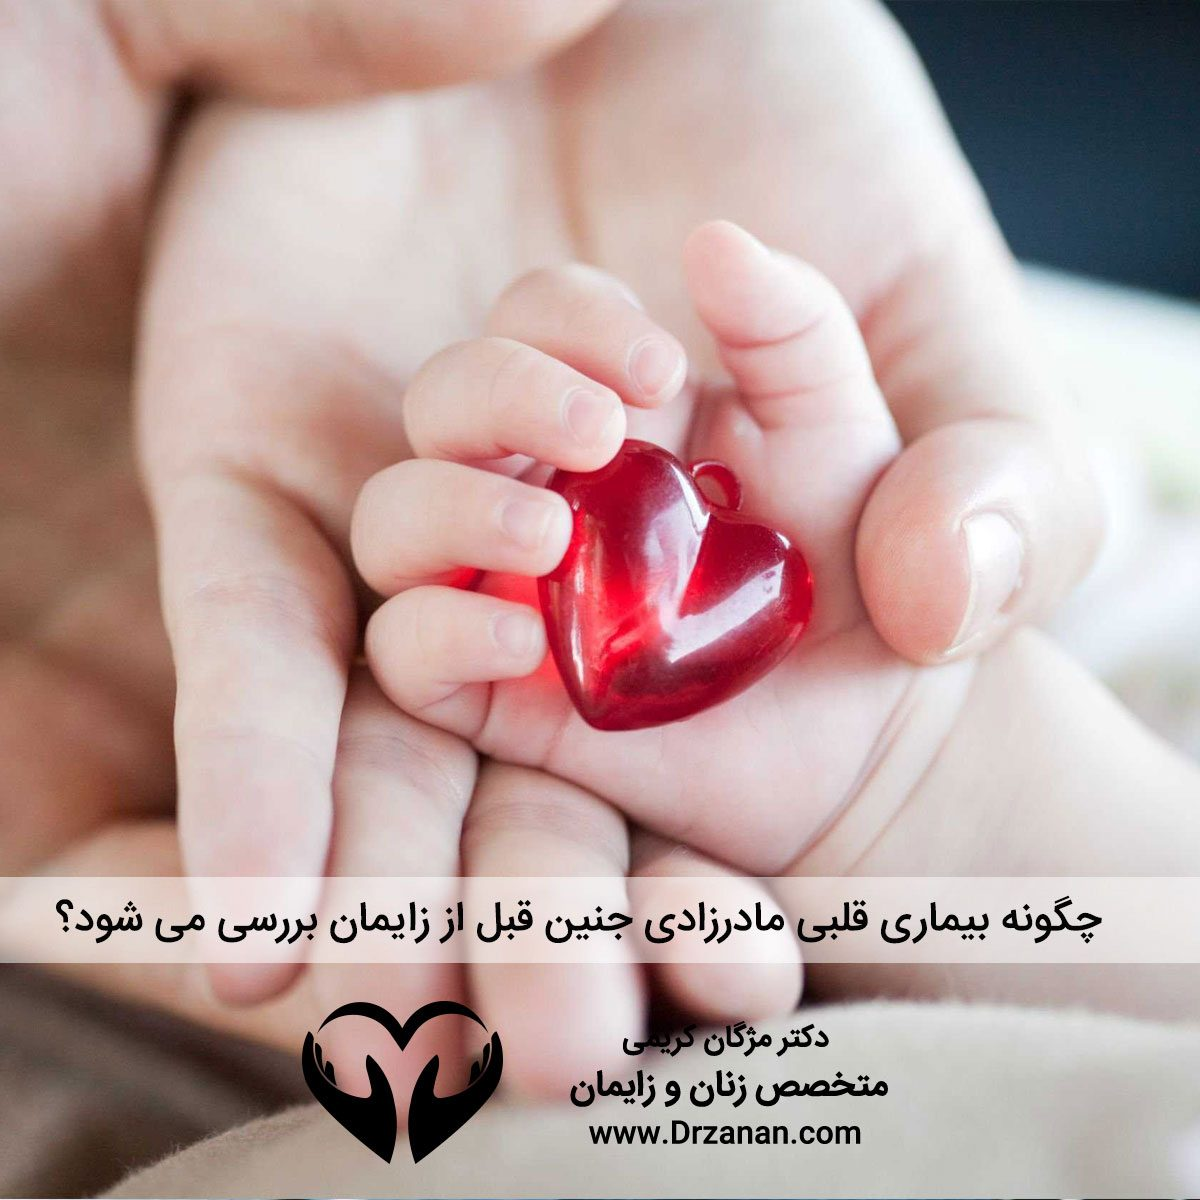 how-is-congenital-embryonic-congenital-heart-disease-evaluated-before-childbirth-1200x1200.jpg